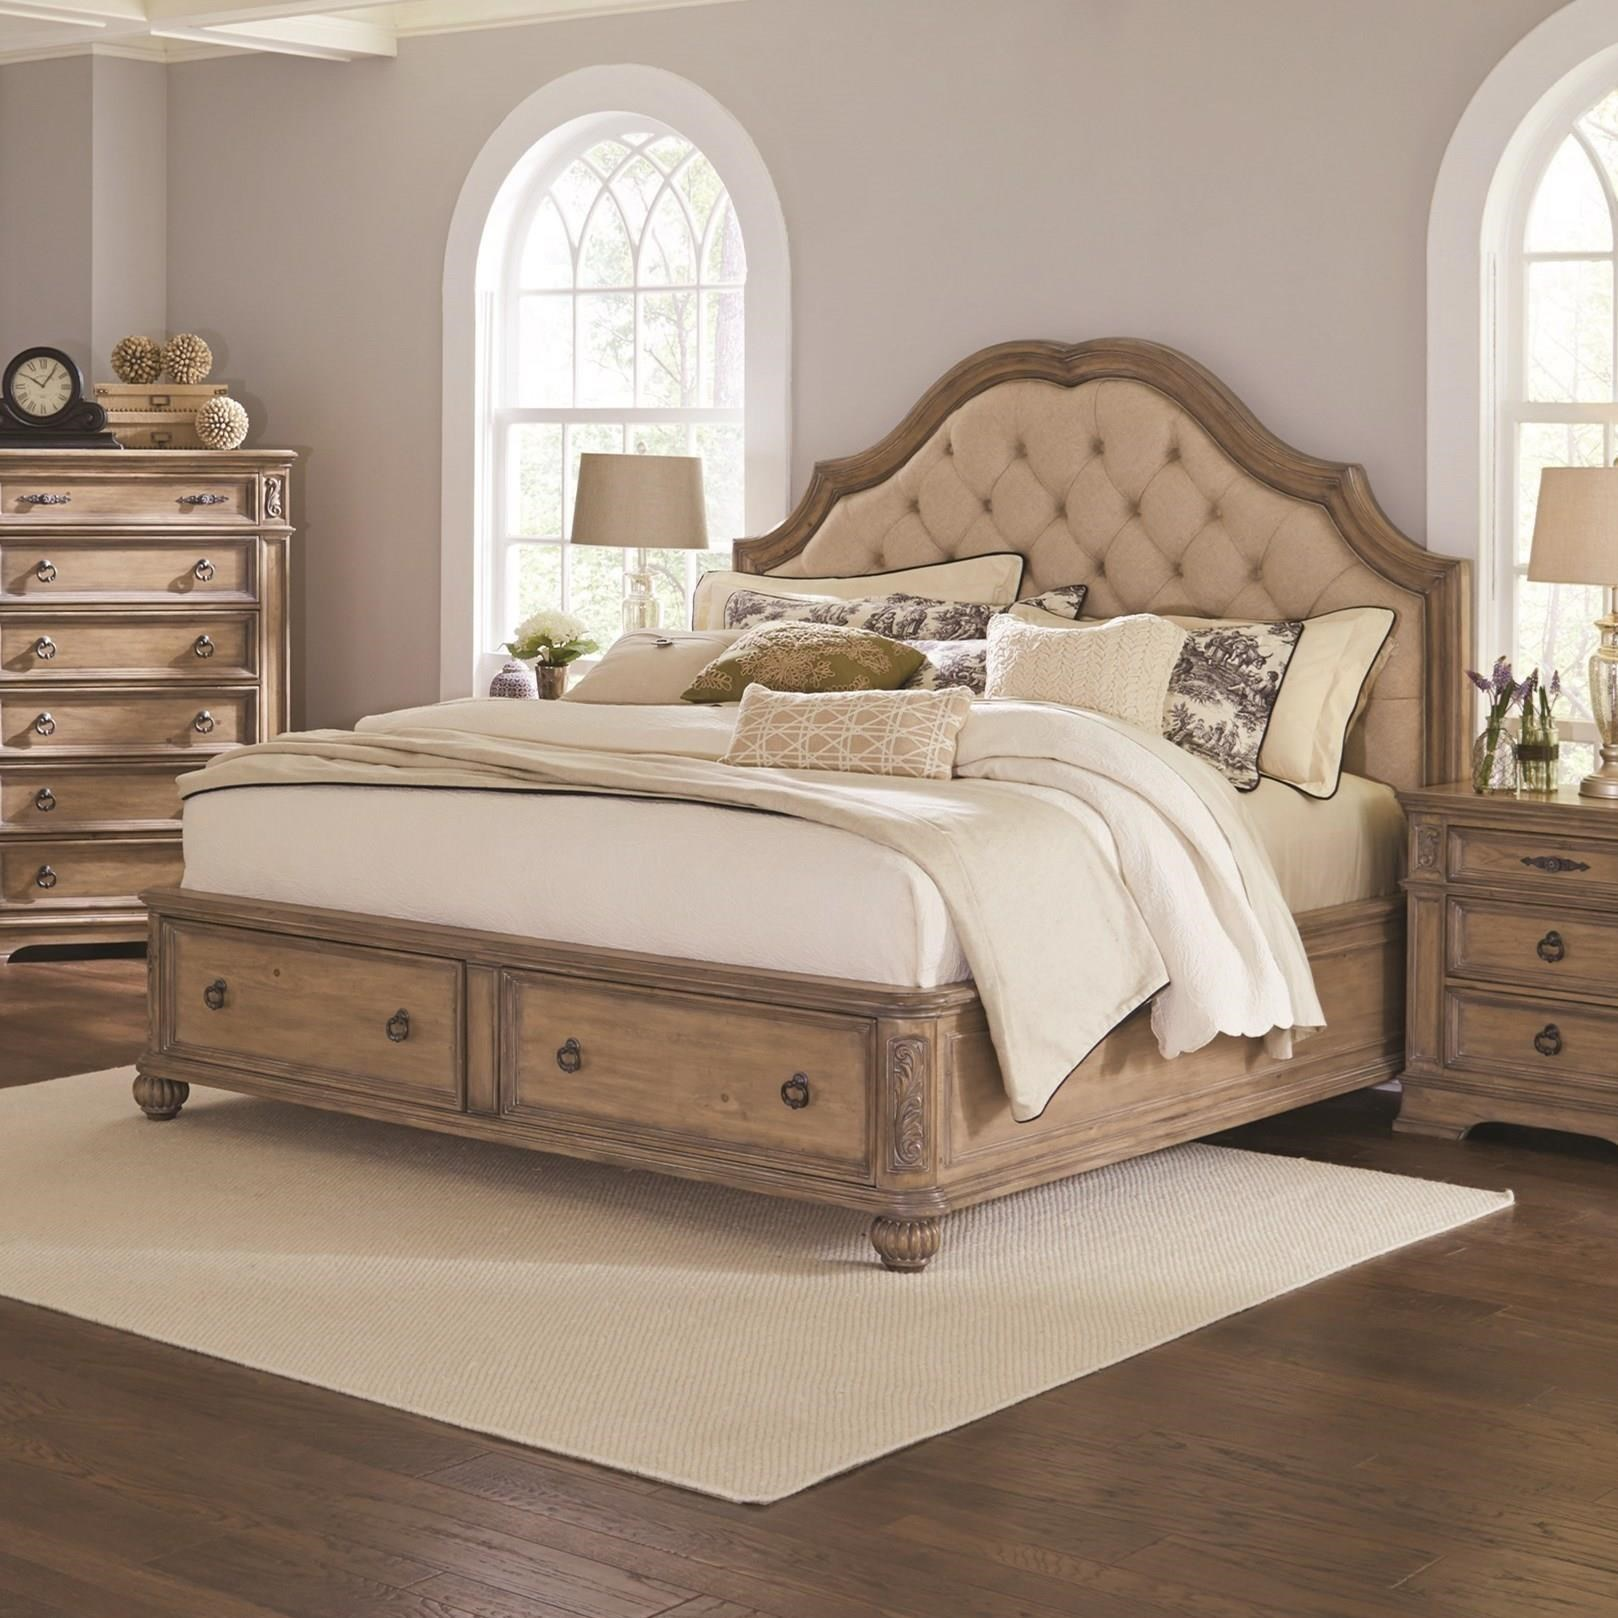 ilana collection 205070ke eastern king bed with a deep tufting in the upholstered headboard and. Black Bedroom Furniture Sets. Home Design Ideas